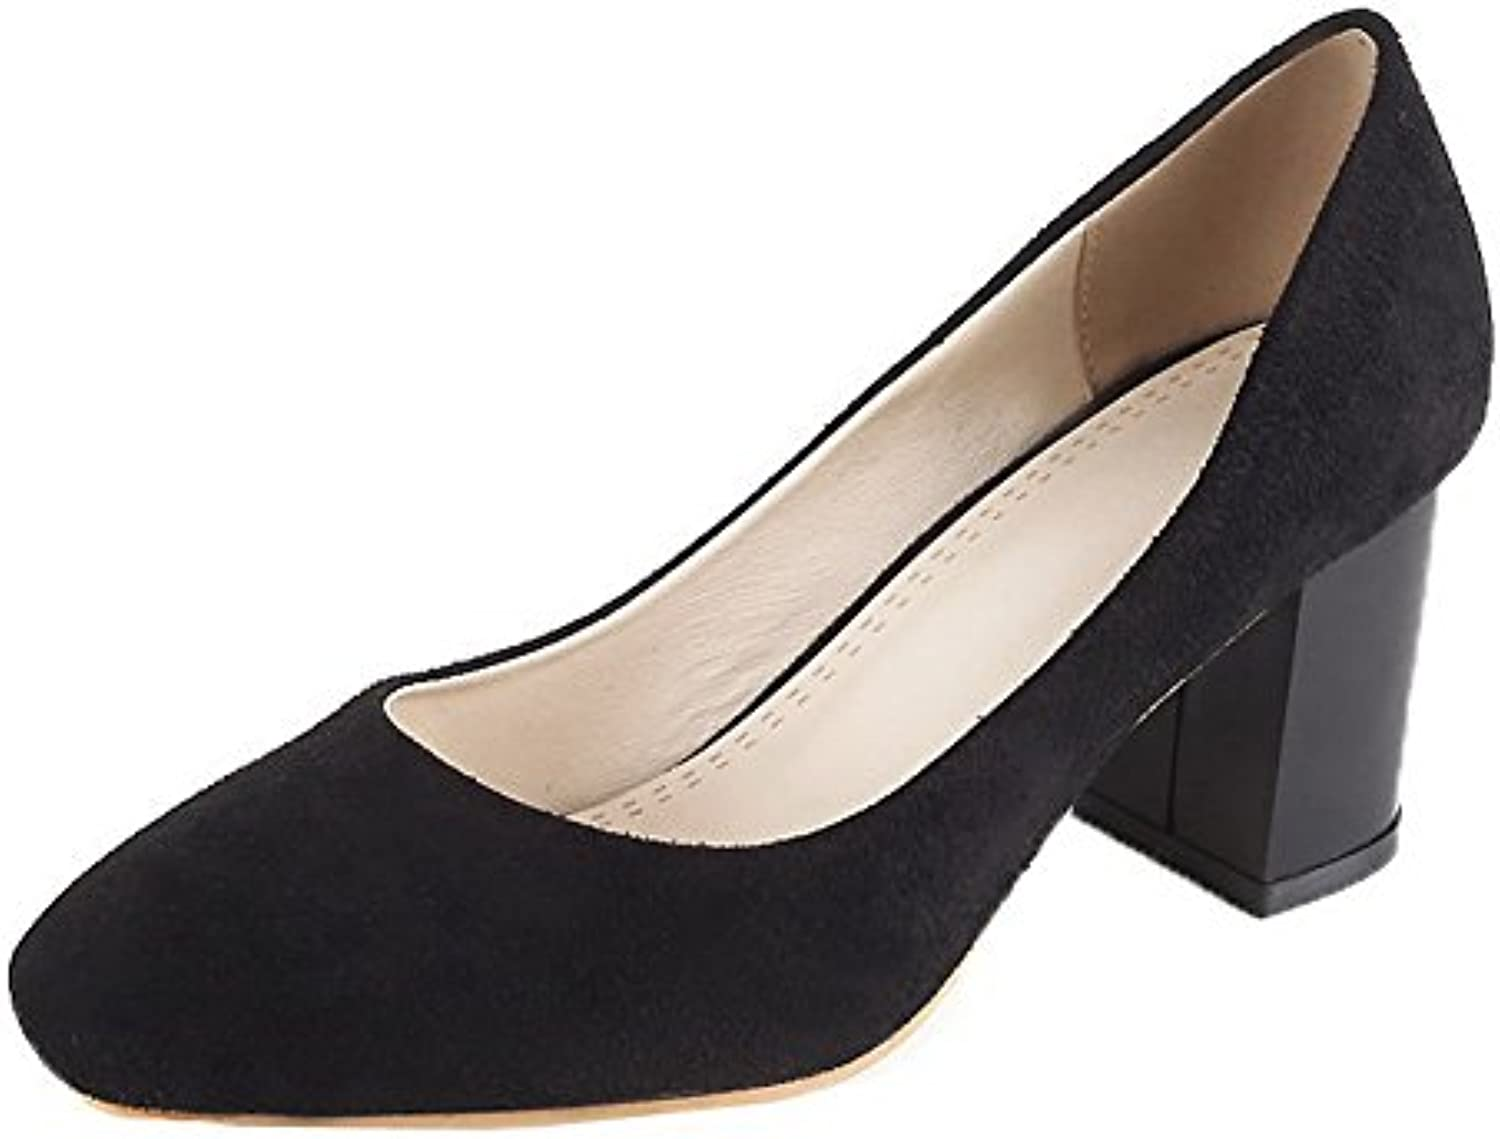 7a6261bdecb AgooLar Women s Kitten-Heels Solid Solid Solid Pull-On Frosted Square  Closed Toe Pumps-Shoes